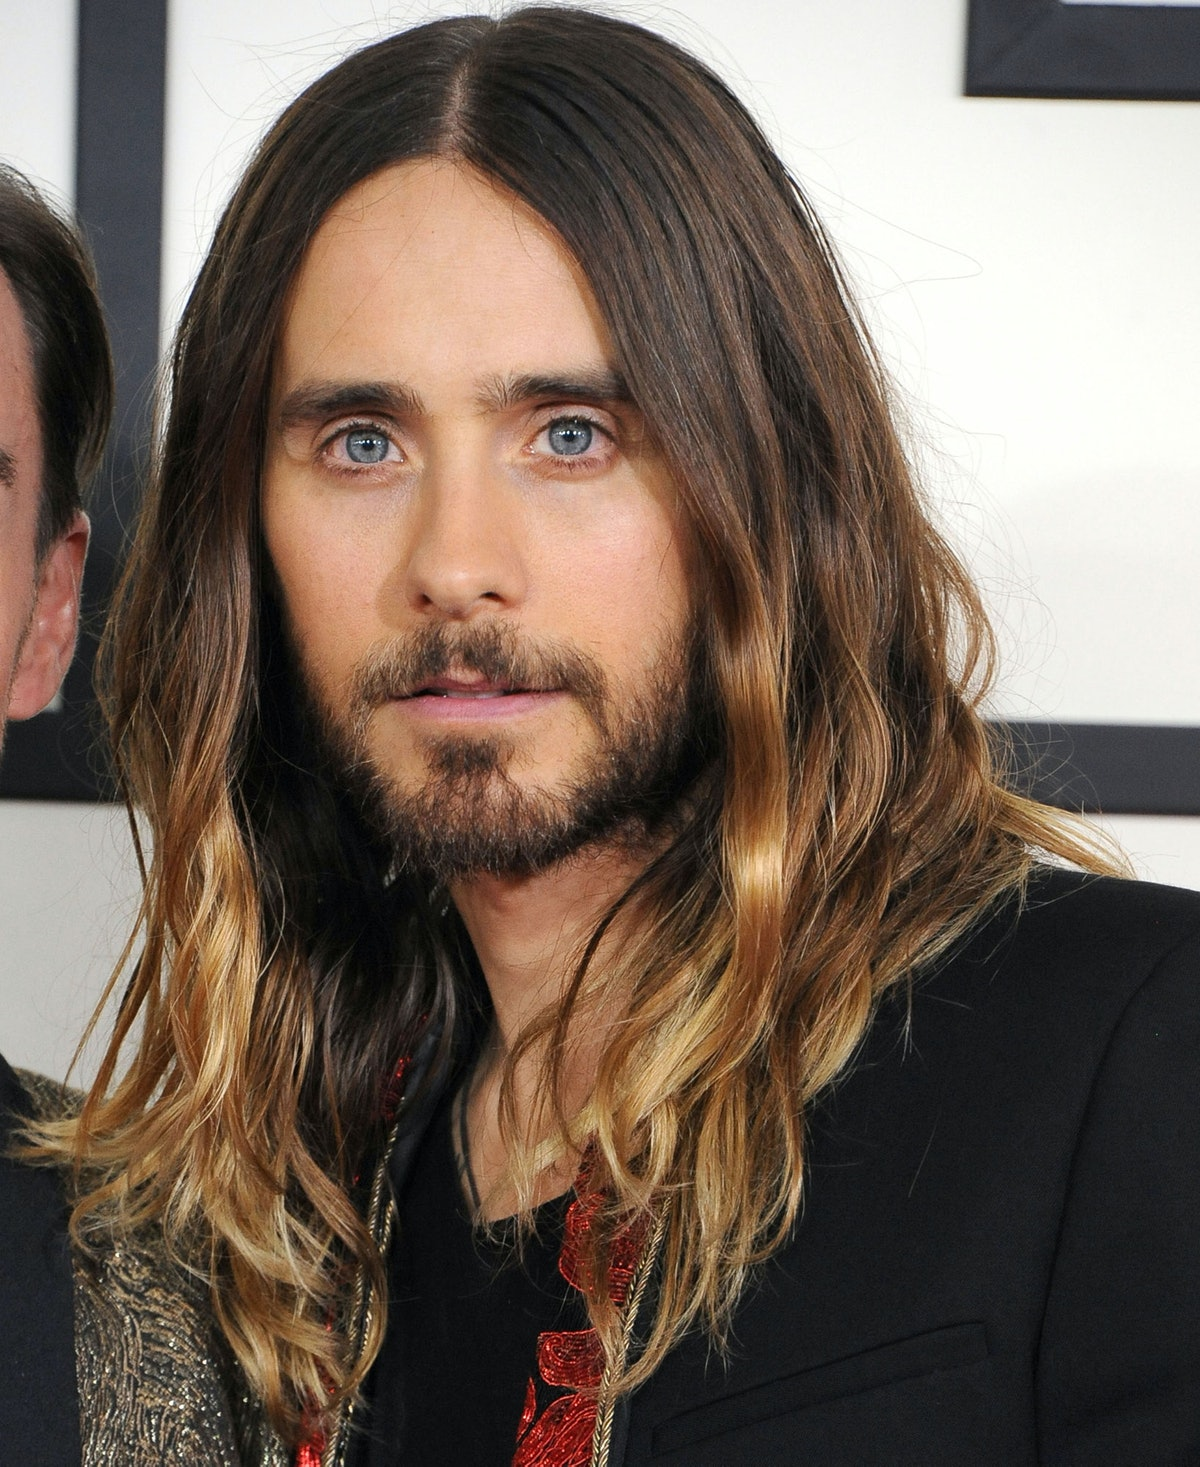 __[Jared Leto](http://www.wmagazine.com/people/celebrities/2014/01/best-performances-hollywood-juerg...